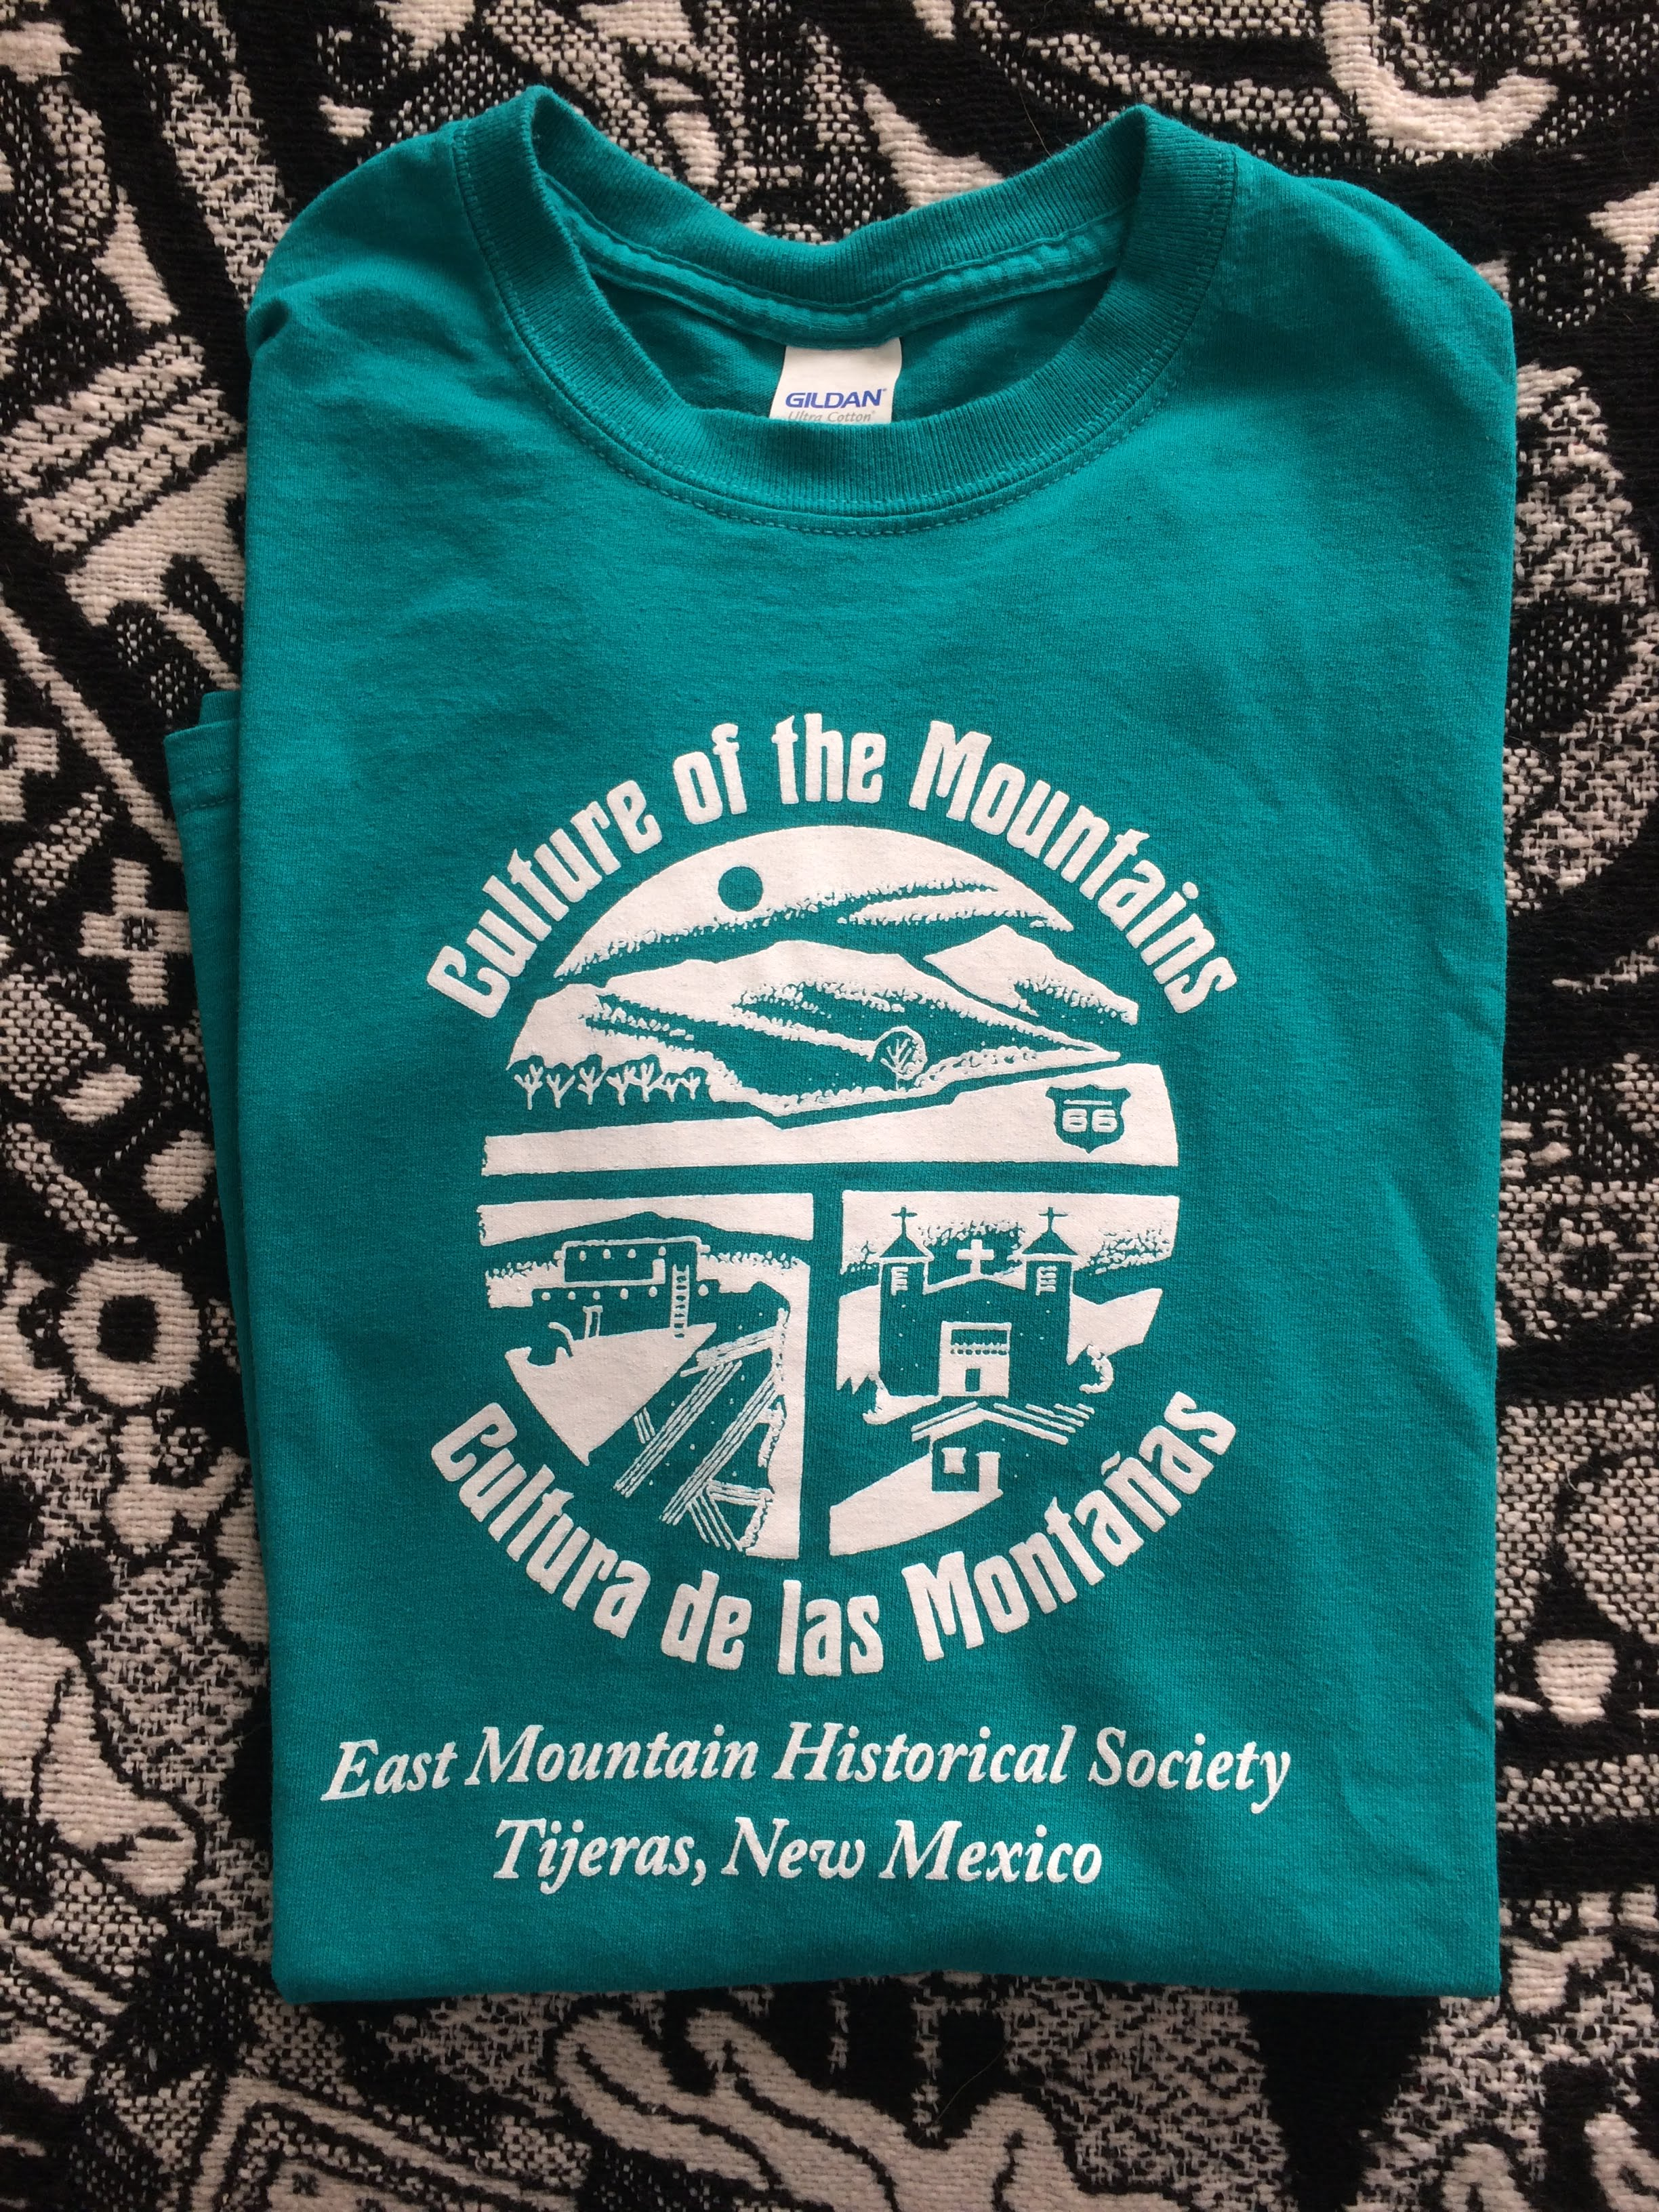 East Mountain Historical Society to share photos, map at open house